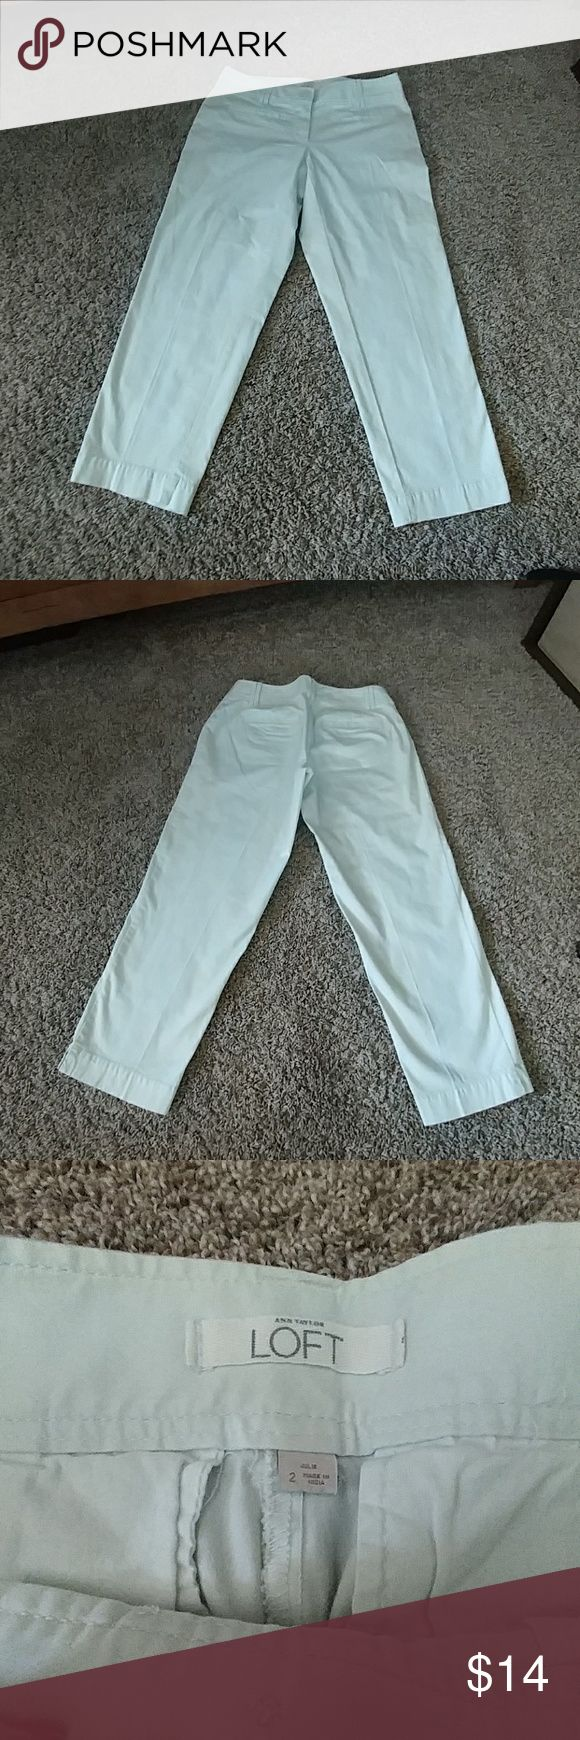 { LOFT } Straight-Leg Minty Capris A light mint green color.  Super soft cotton. Double button and zip. Mid-rise capris.  Very cute!!!!!! And LIKE-NEW!!  No holes, stains, pilling or fade anywhere. Simple and basic. If you'd like me to model them in a pic...let me know. Inseam measures 24 in. long. Waist measures 14 in. lying flat. Thanks!! :) LOFT Pants Capris